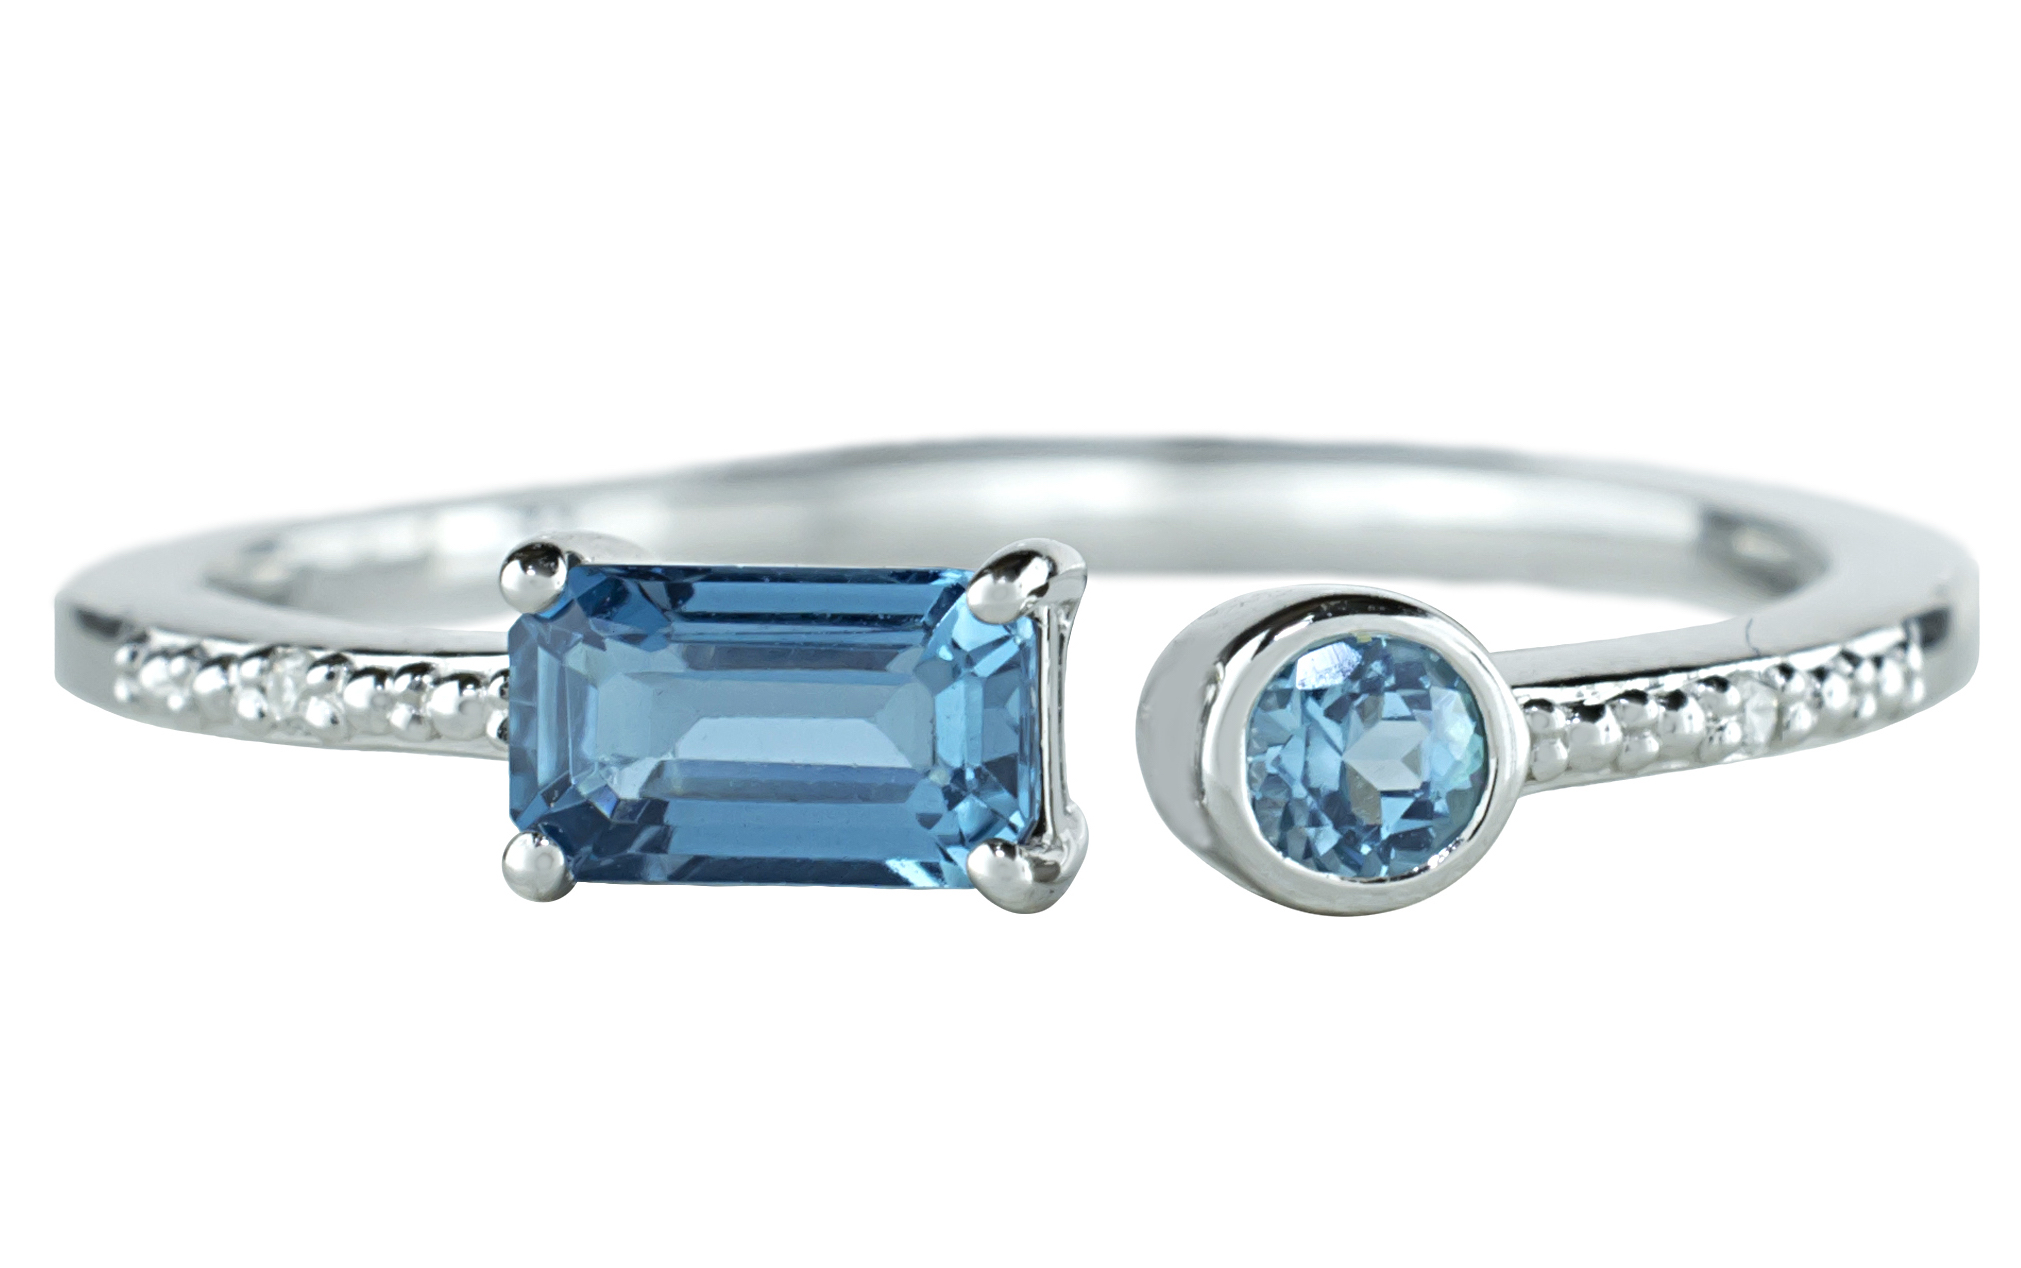 JewelMak London blue topaz ring | JCK On Your Market